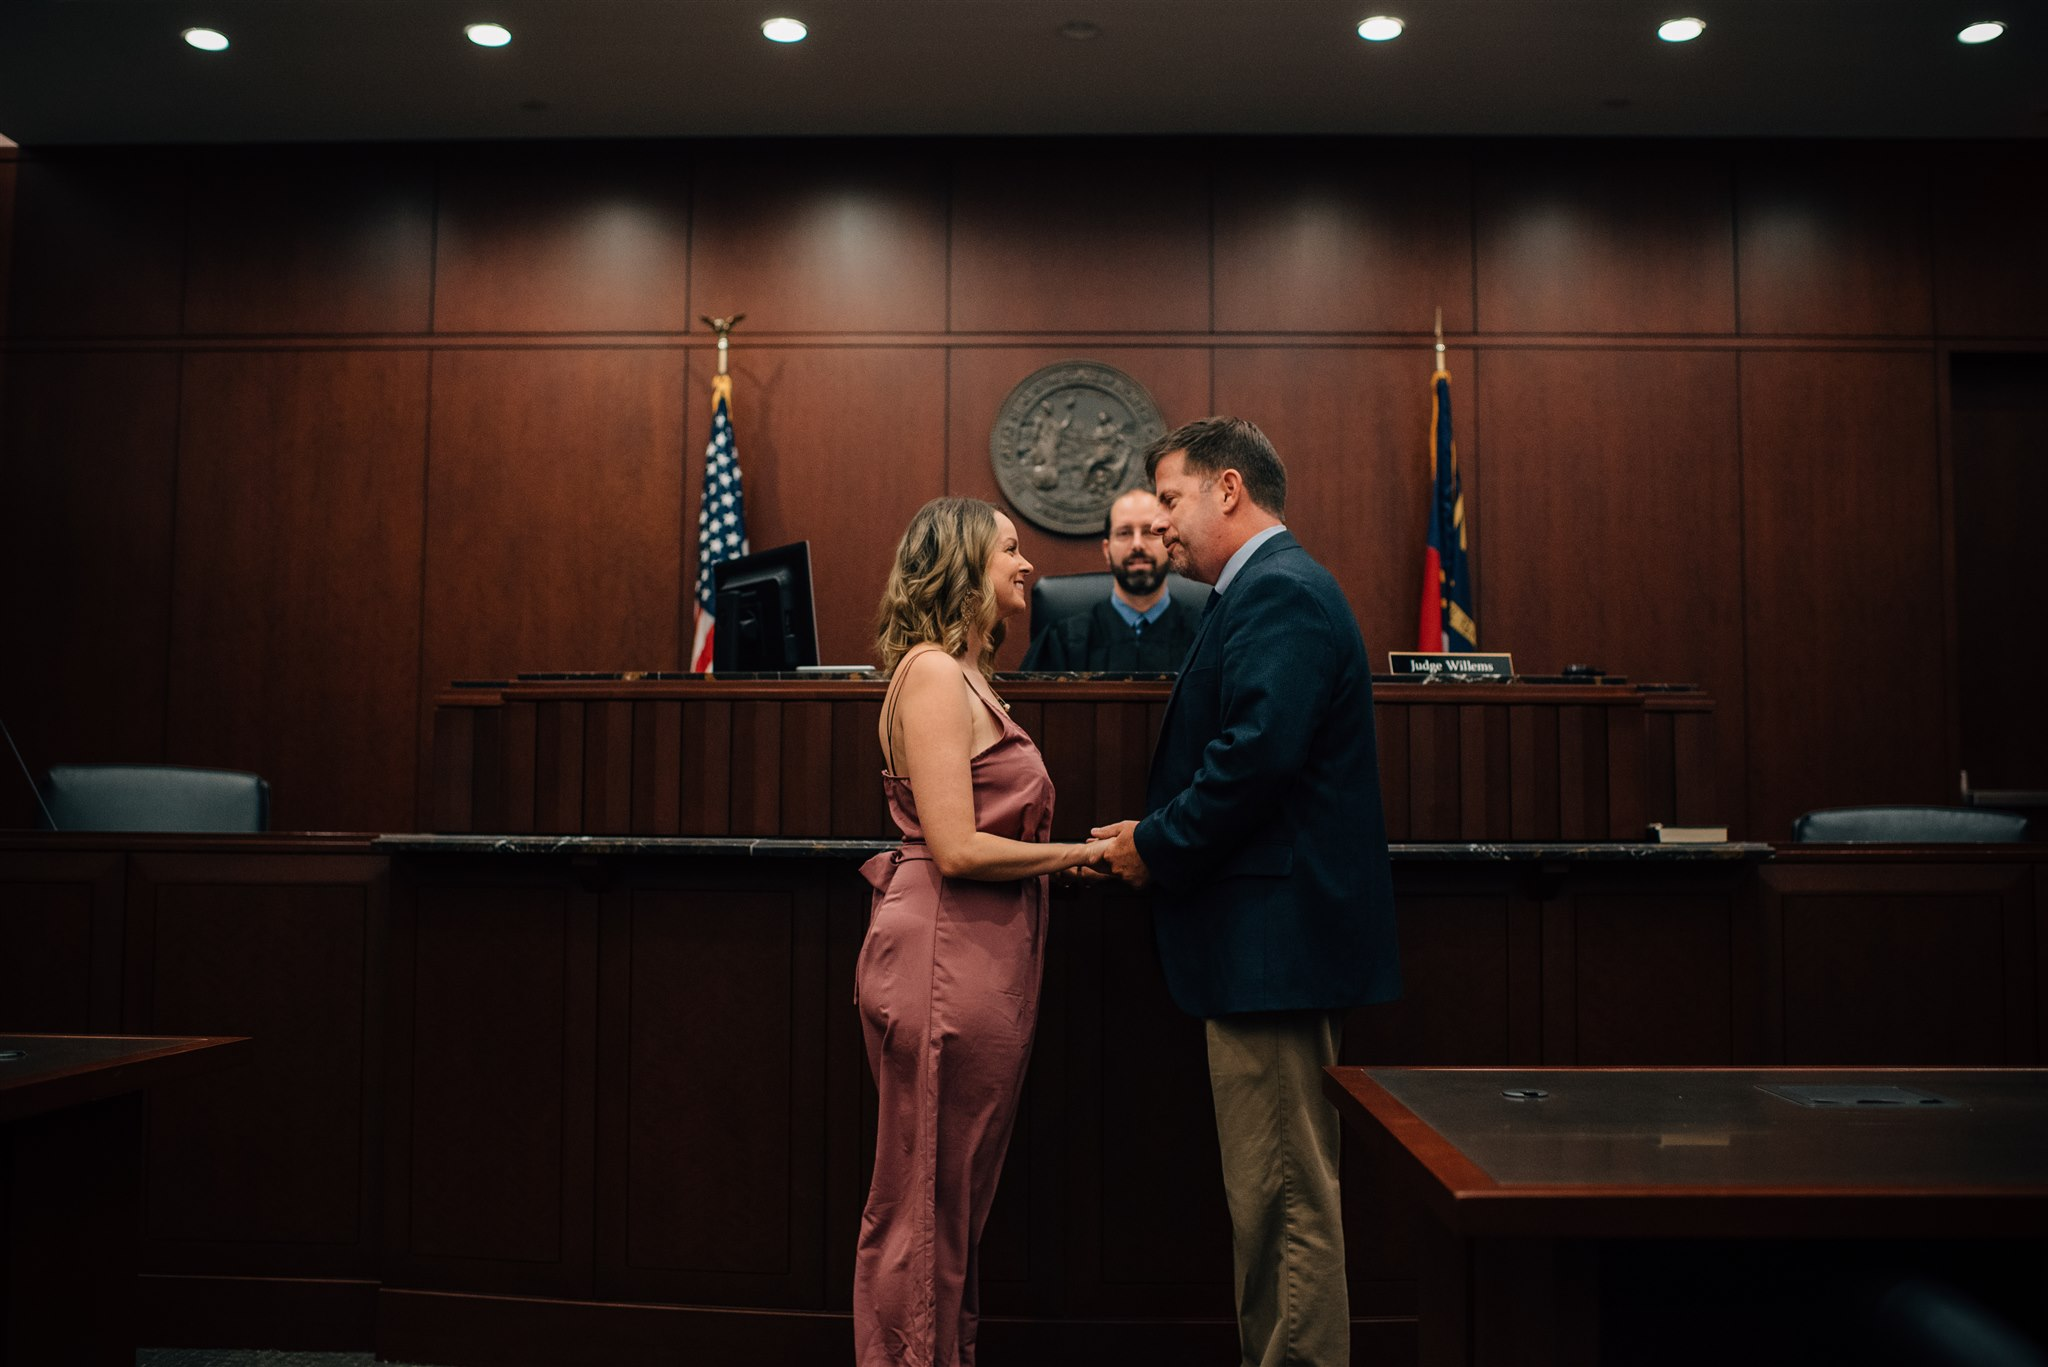 north carolina courthouse wedding - north carolina elopement photographer - raleigh courthouse wedding - raleigh elopement - durham courthouse wedding